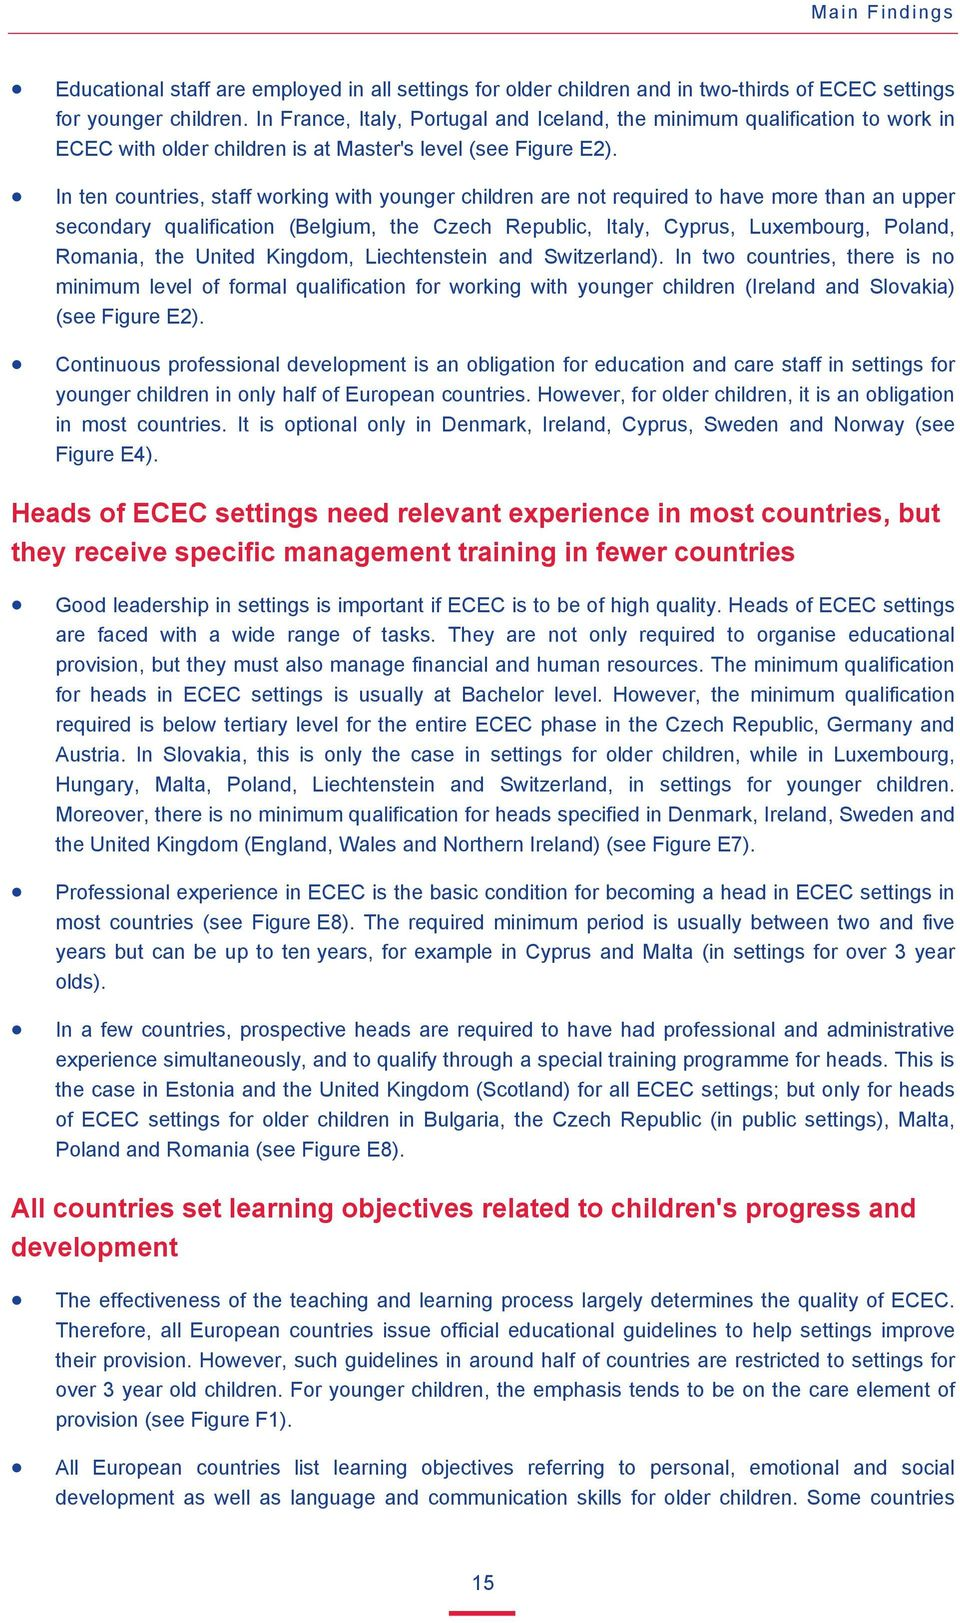 In ten countries, staff working with younger children are not required to have more than an upper secondary qualification (Belgium, the Czech Republic, Italy, Cyprus, Luxembourg, Poland, Romania, the